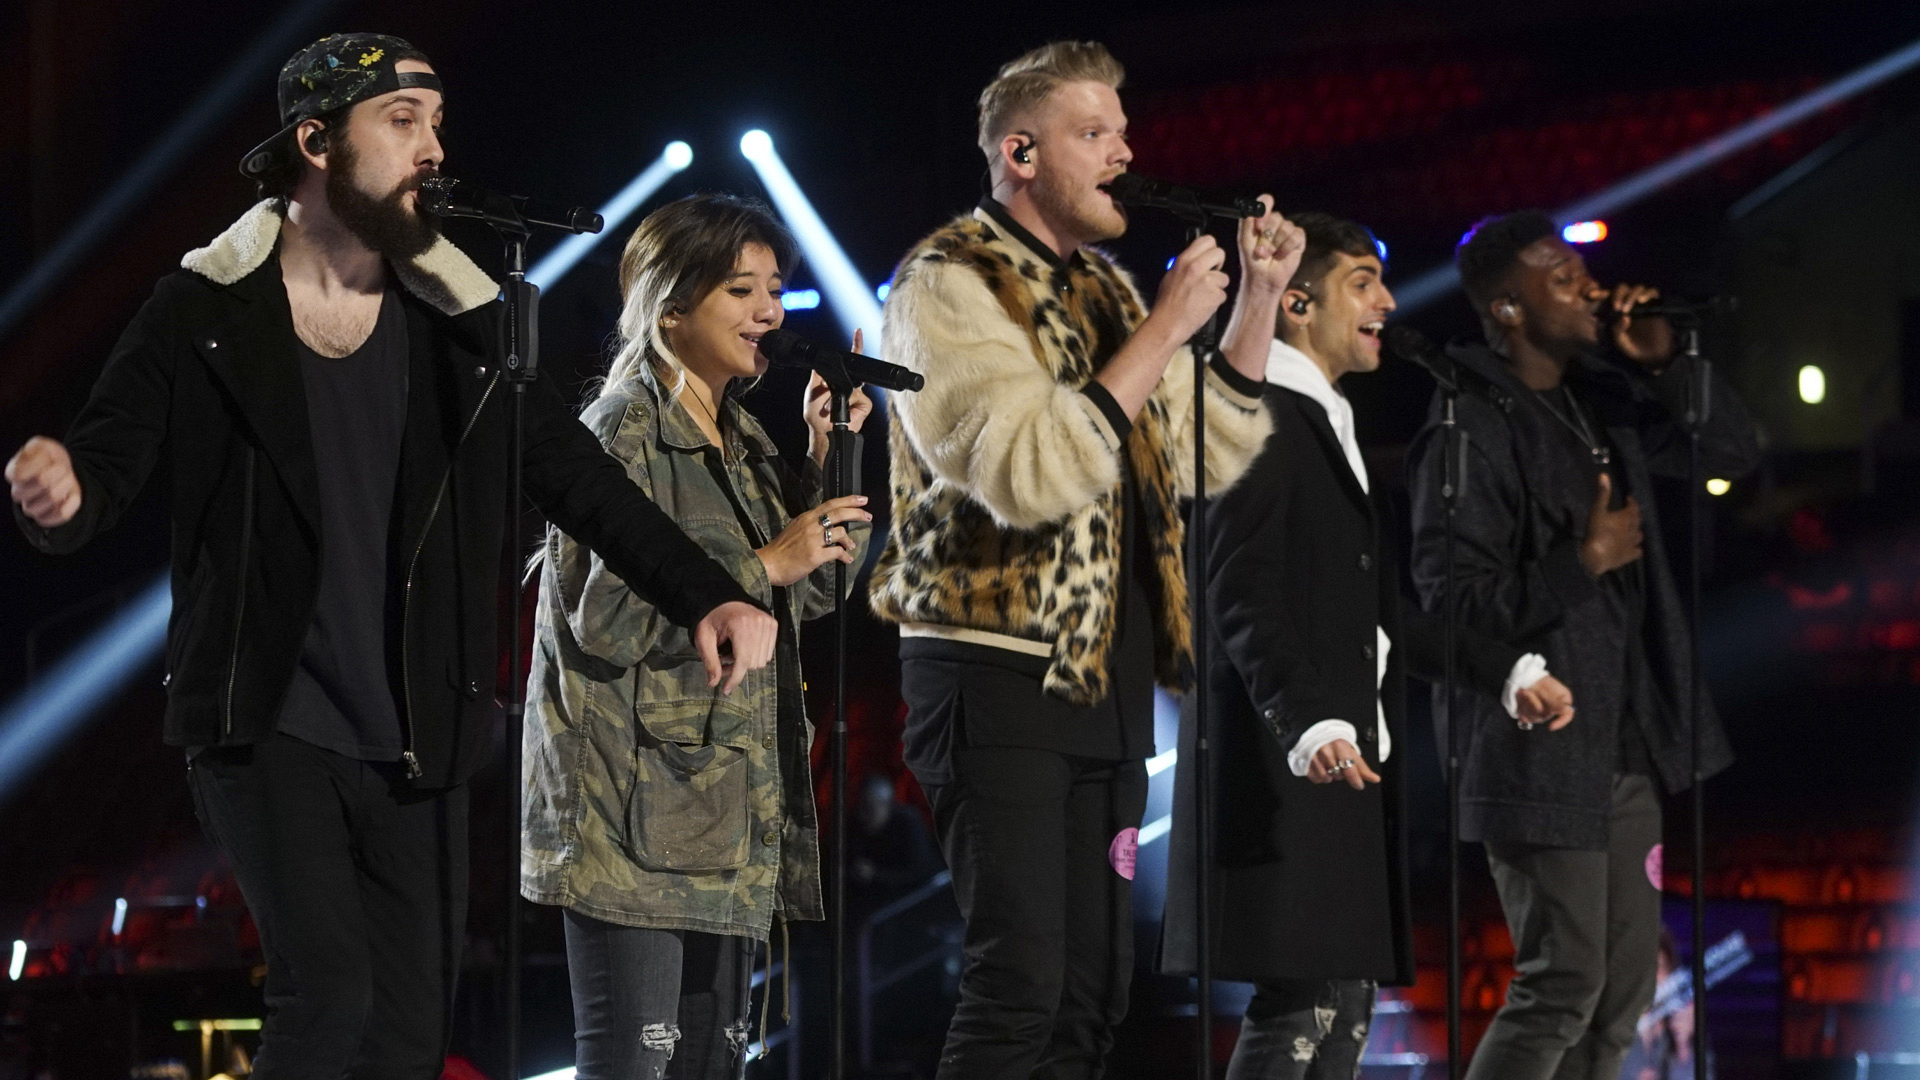 GRAMMY nominees Pentatonix hit the right notes during their rehearsal.